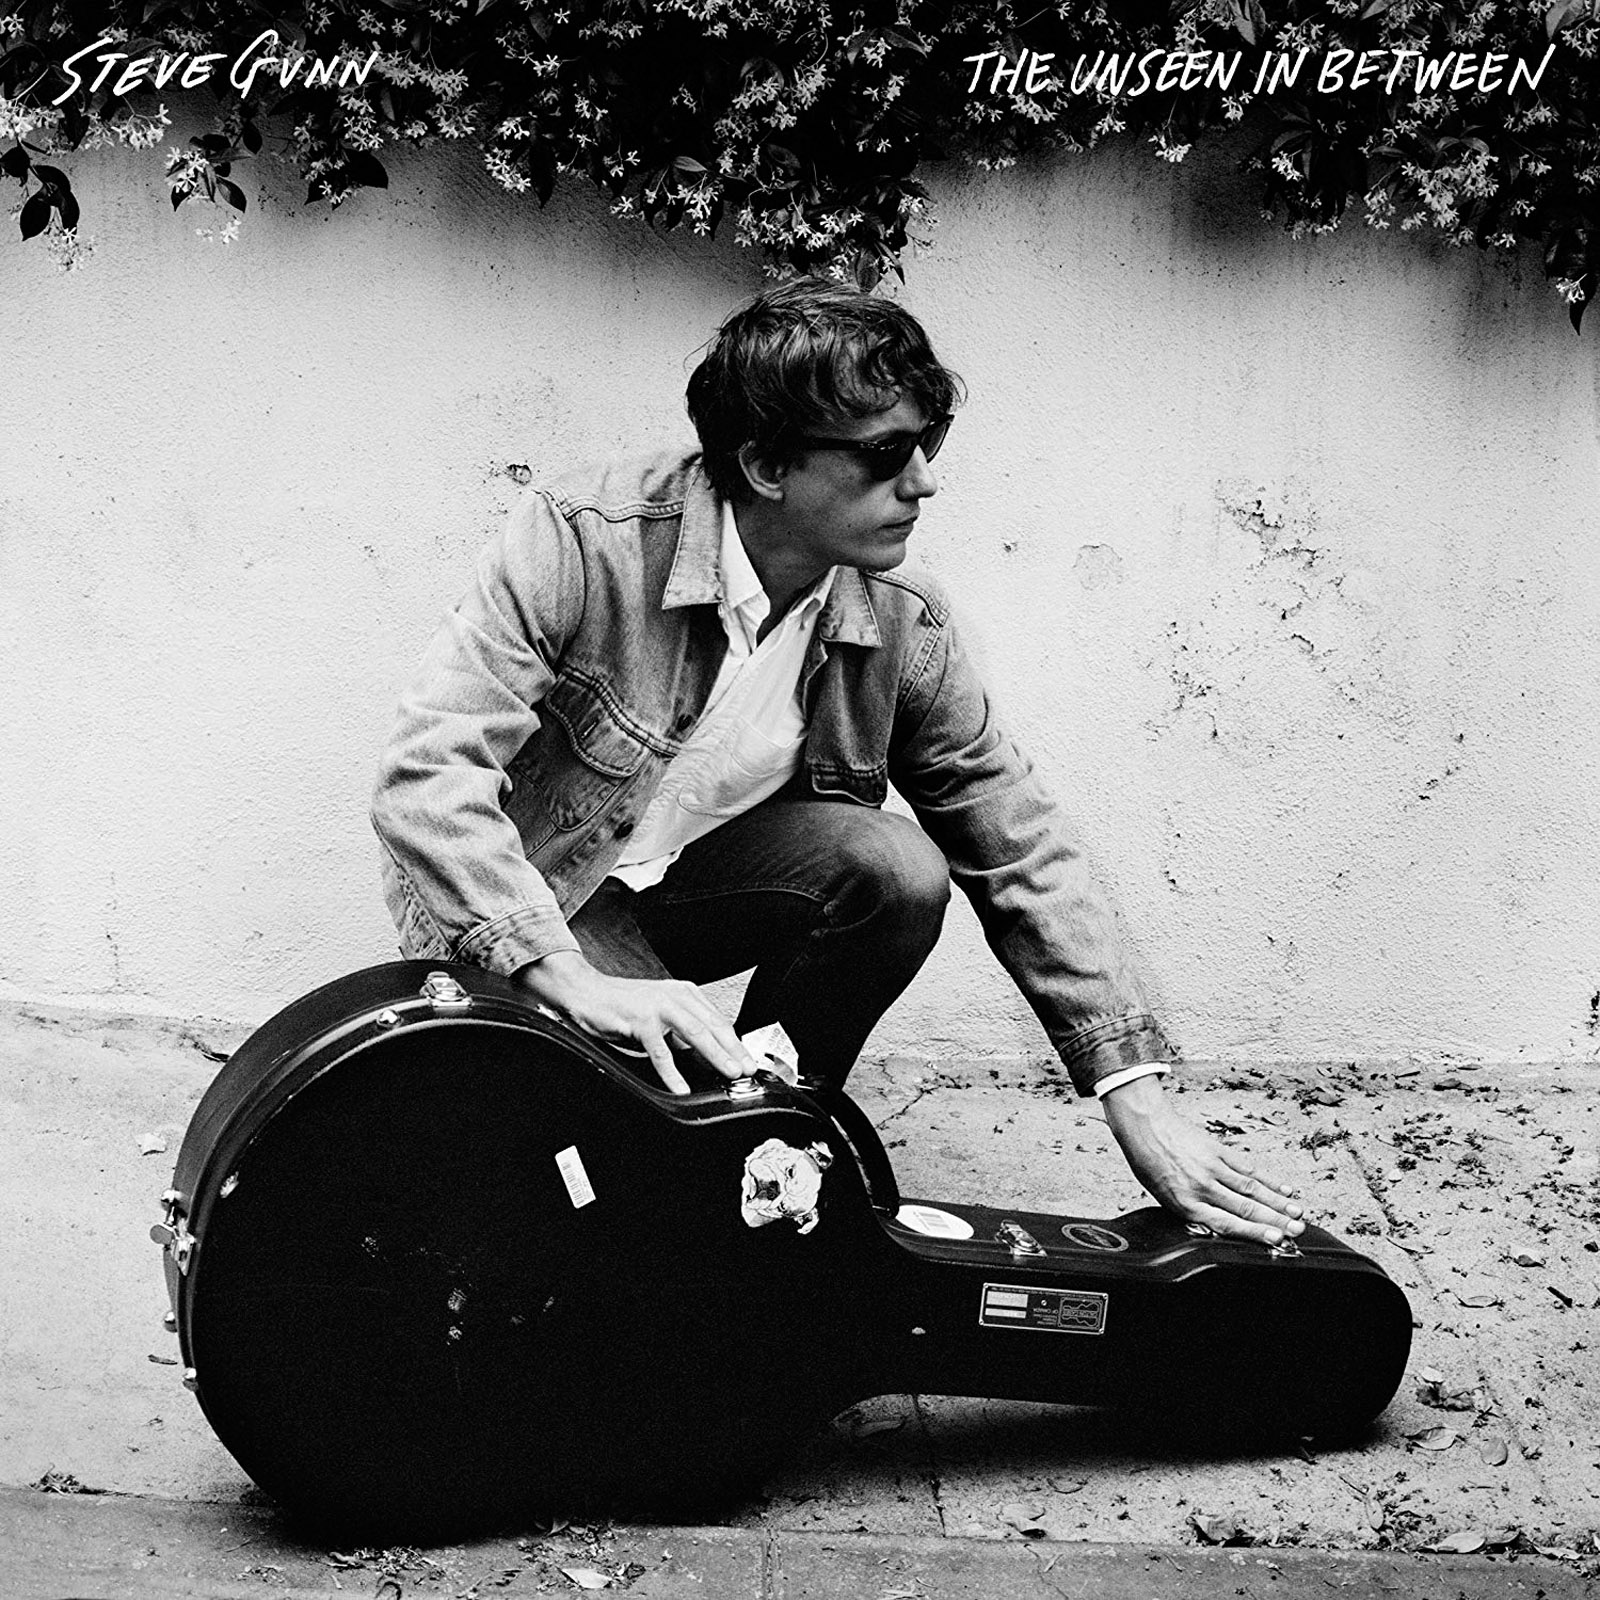 Mejores discos de enero 2019. STEVE GUNN – The Unseen in between